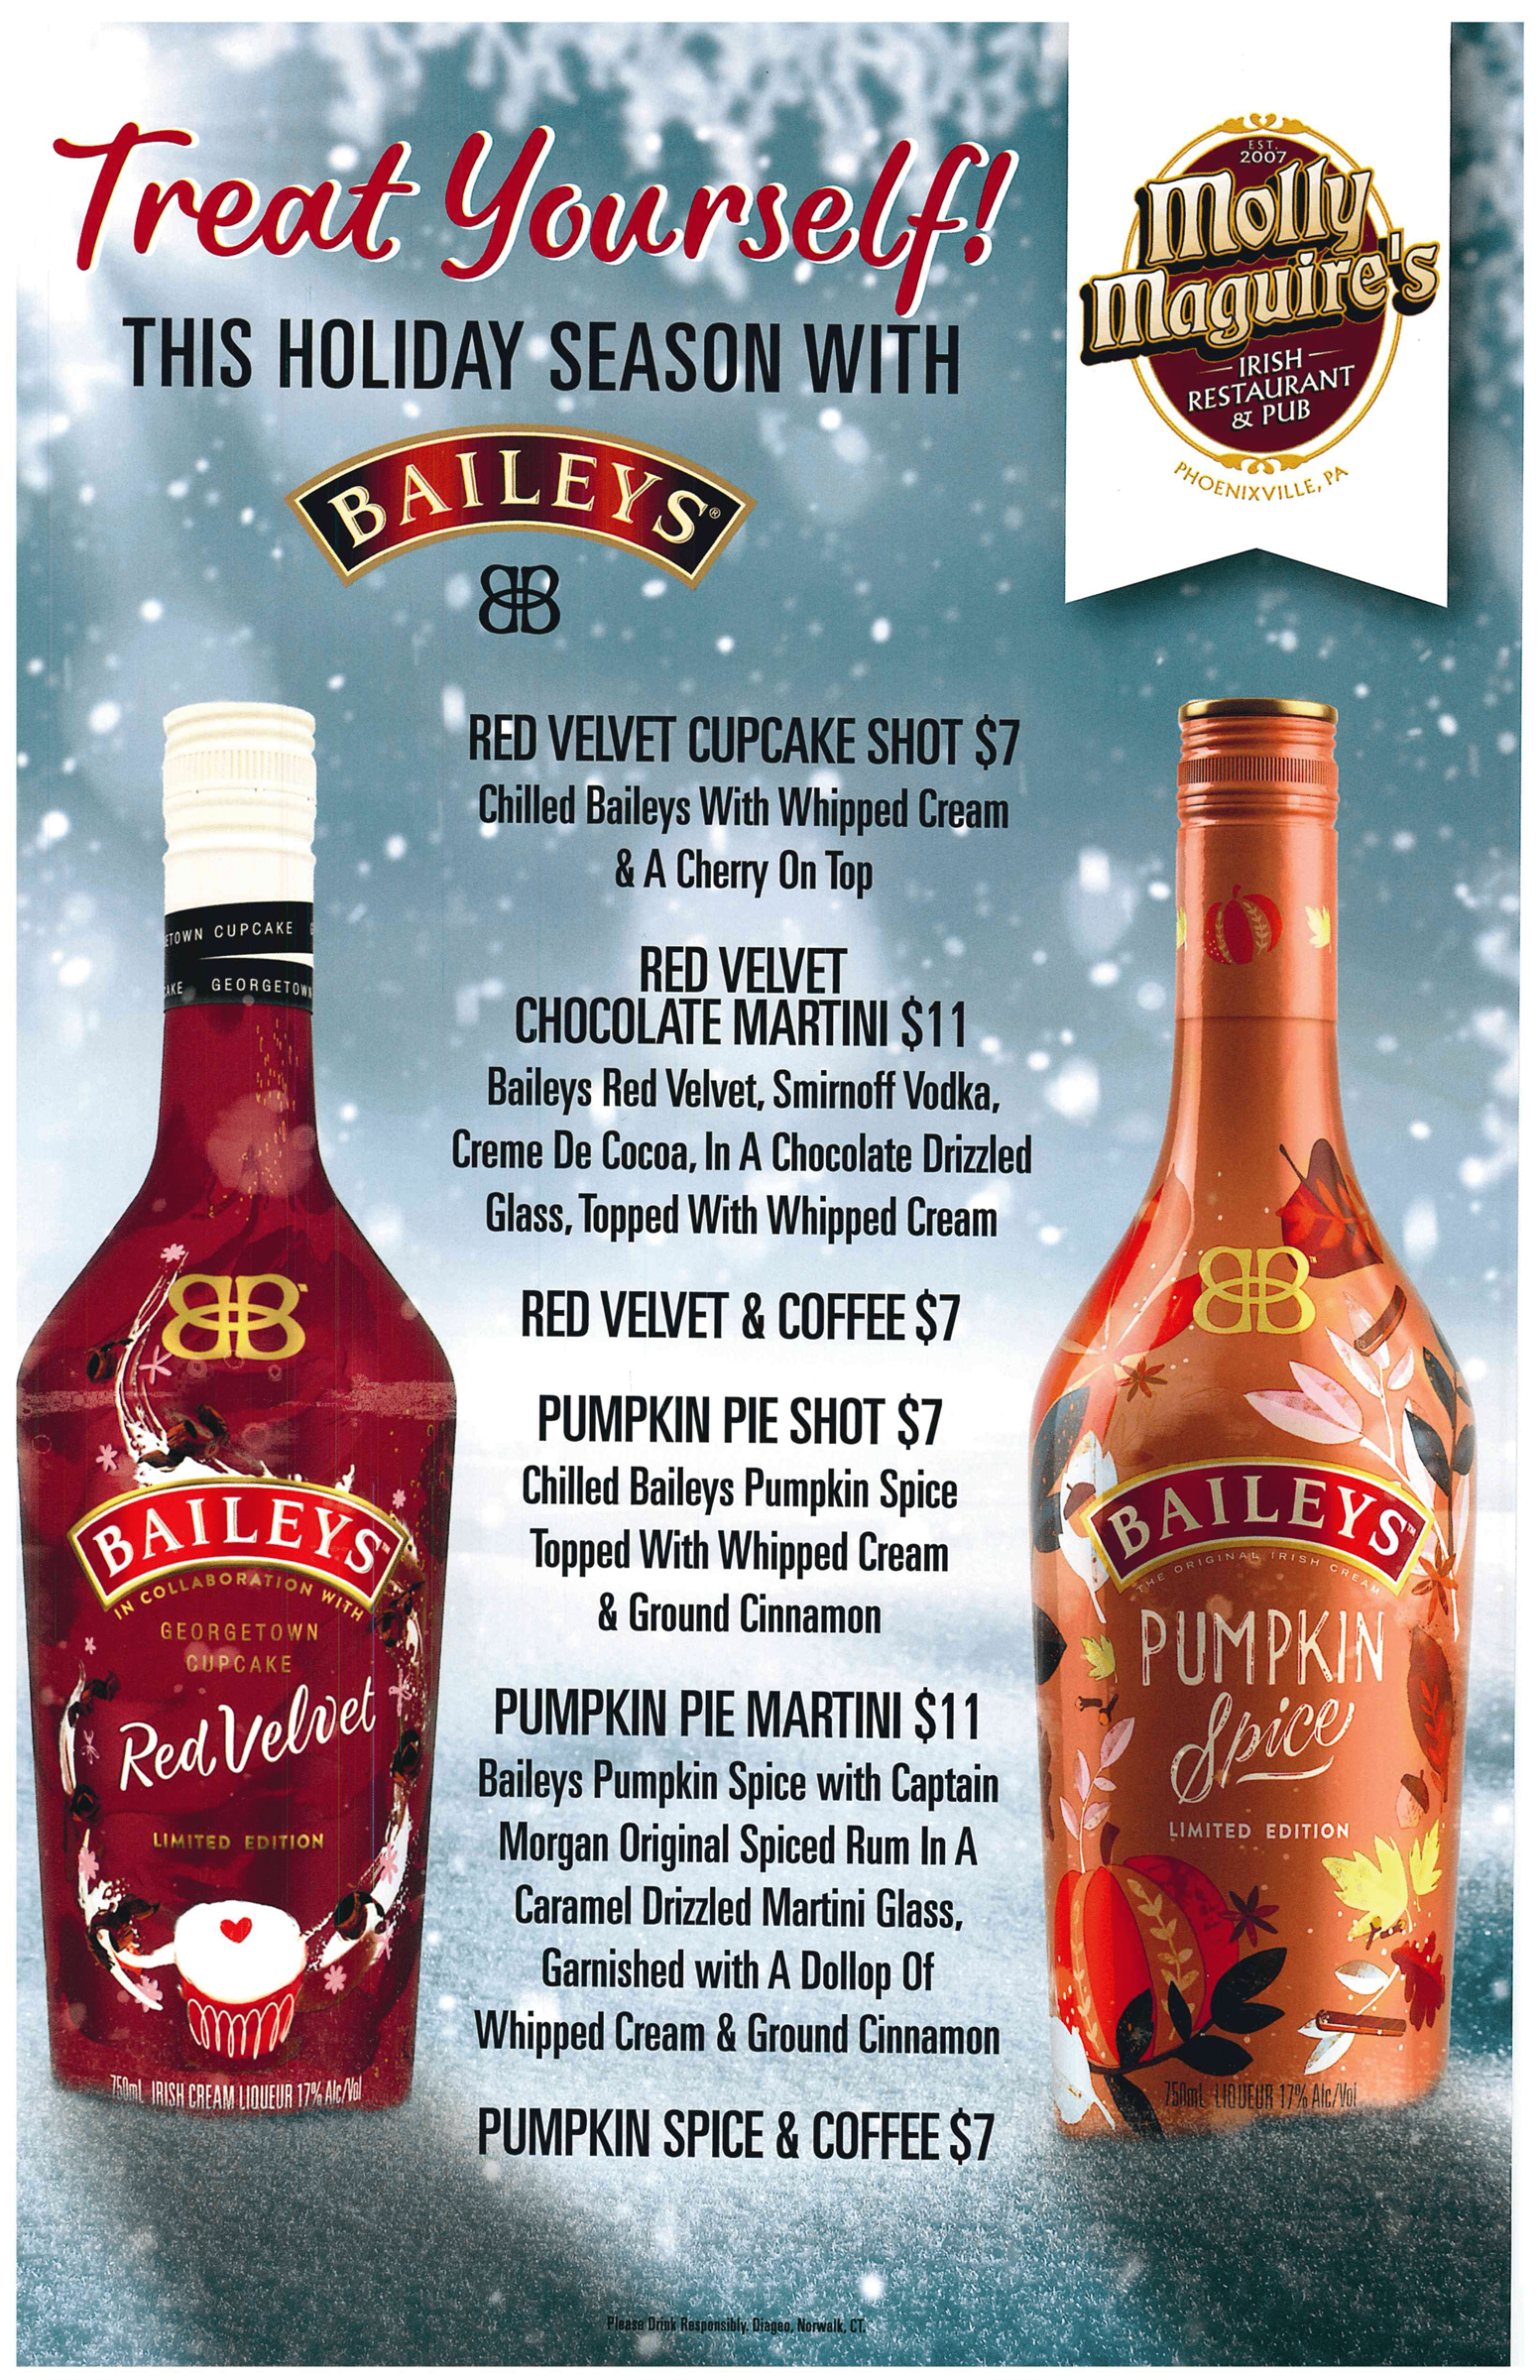 Treat Yourself this holiday season with Baileys